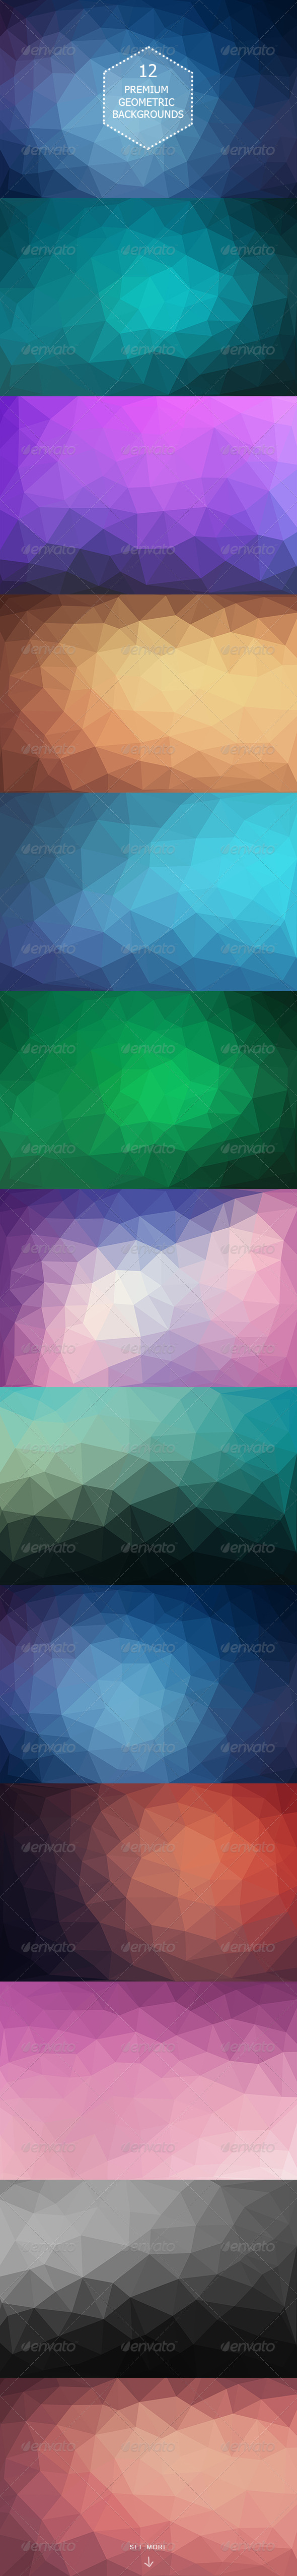 GraphicRiver 12 Modern Geometric Polygonal Backgrounds 8257394